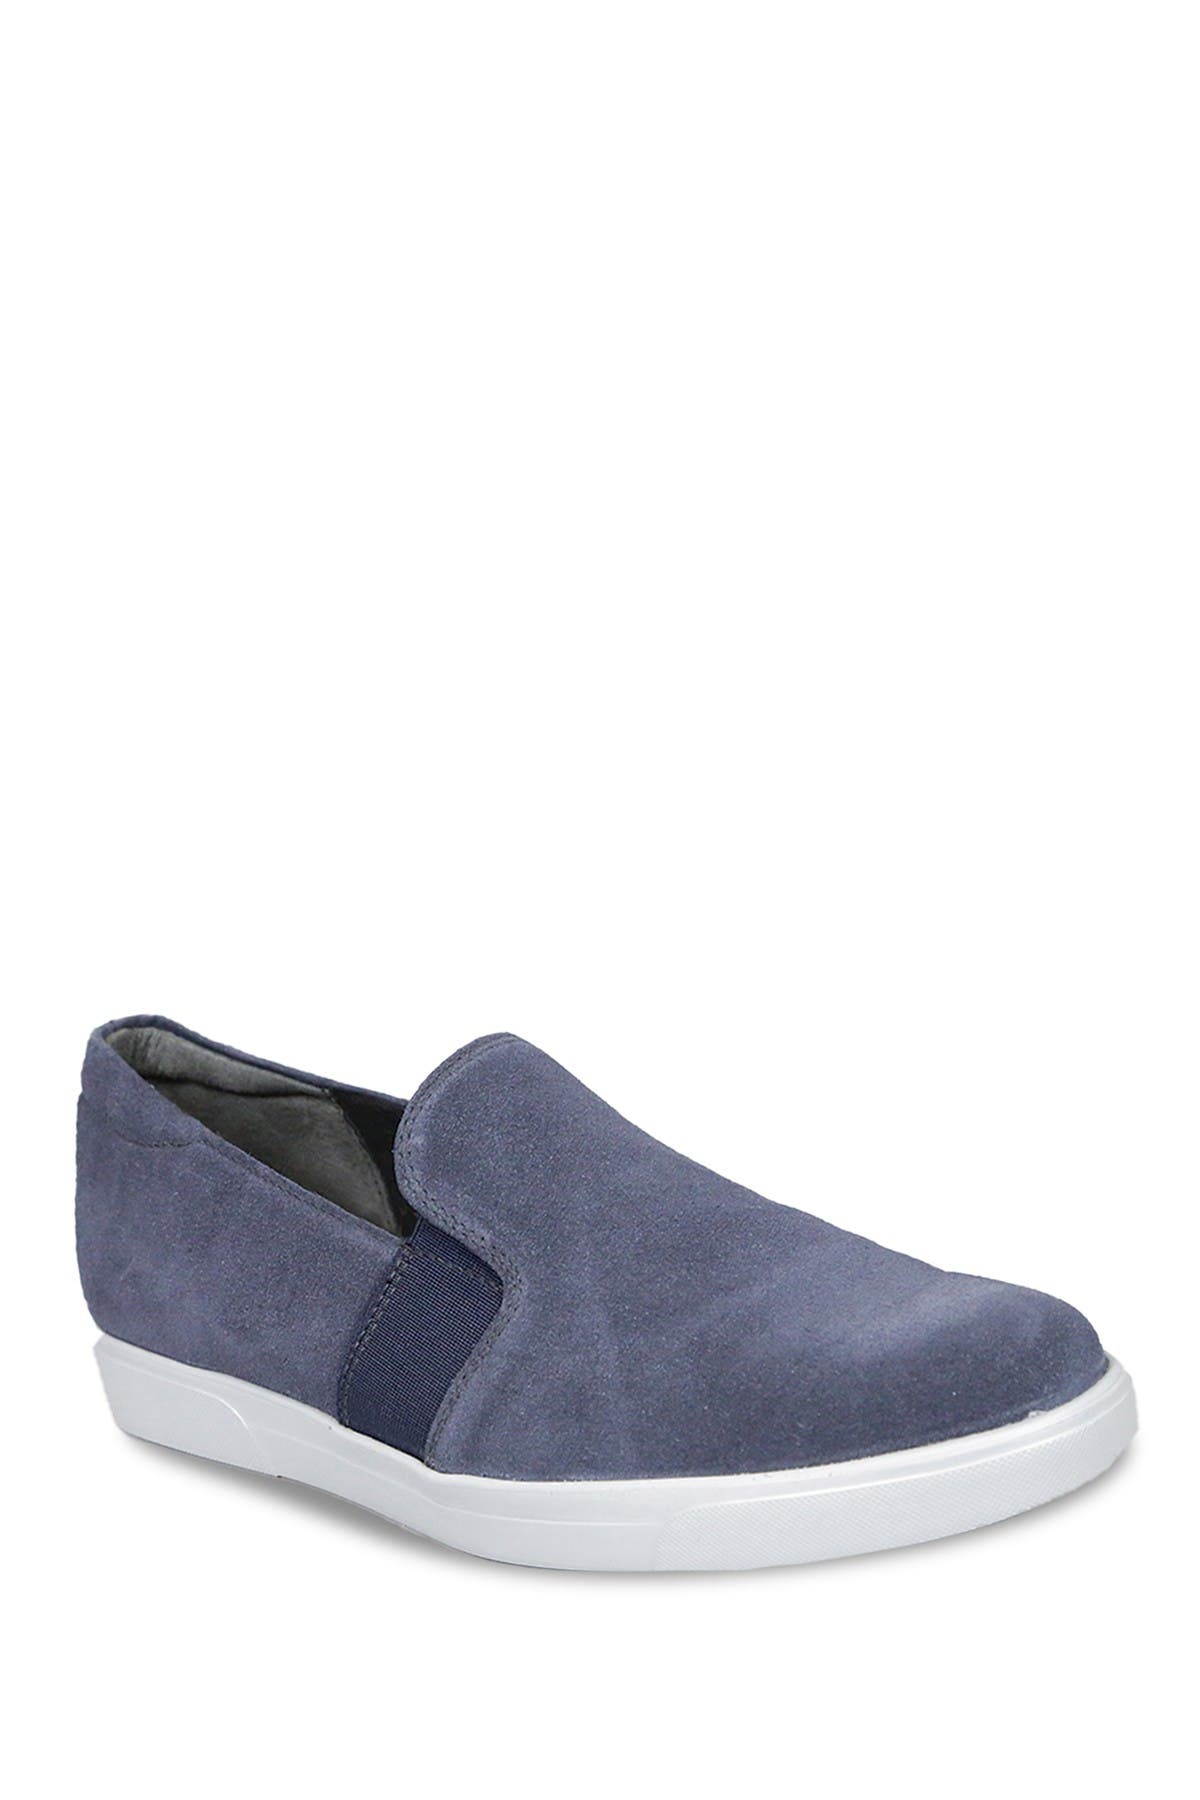 Image of Munro Mandie Slip-On Sneaker